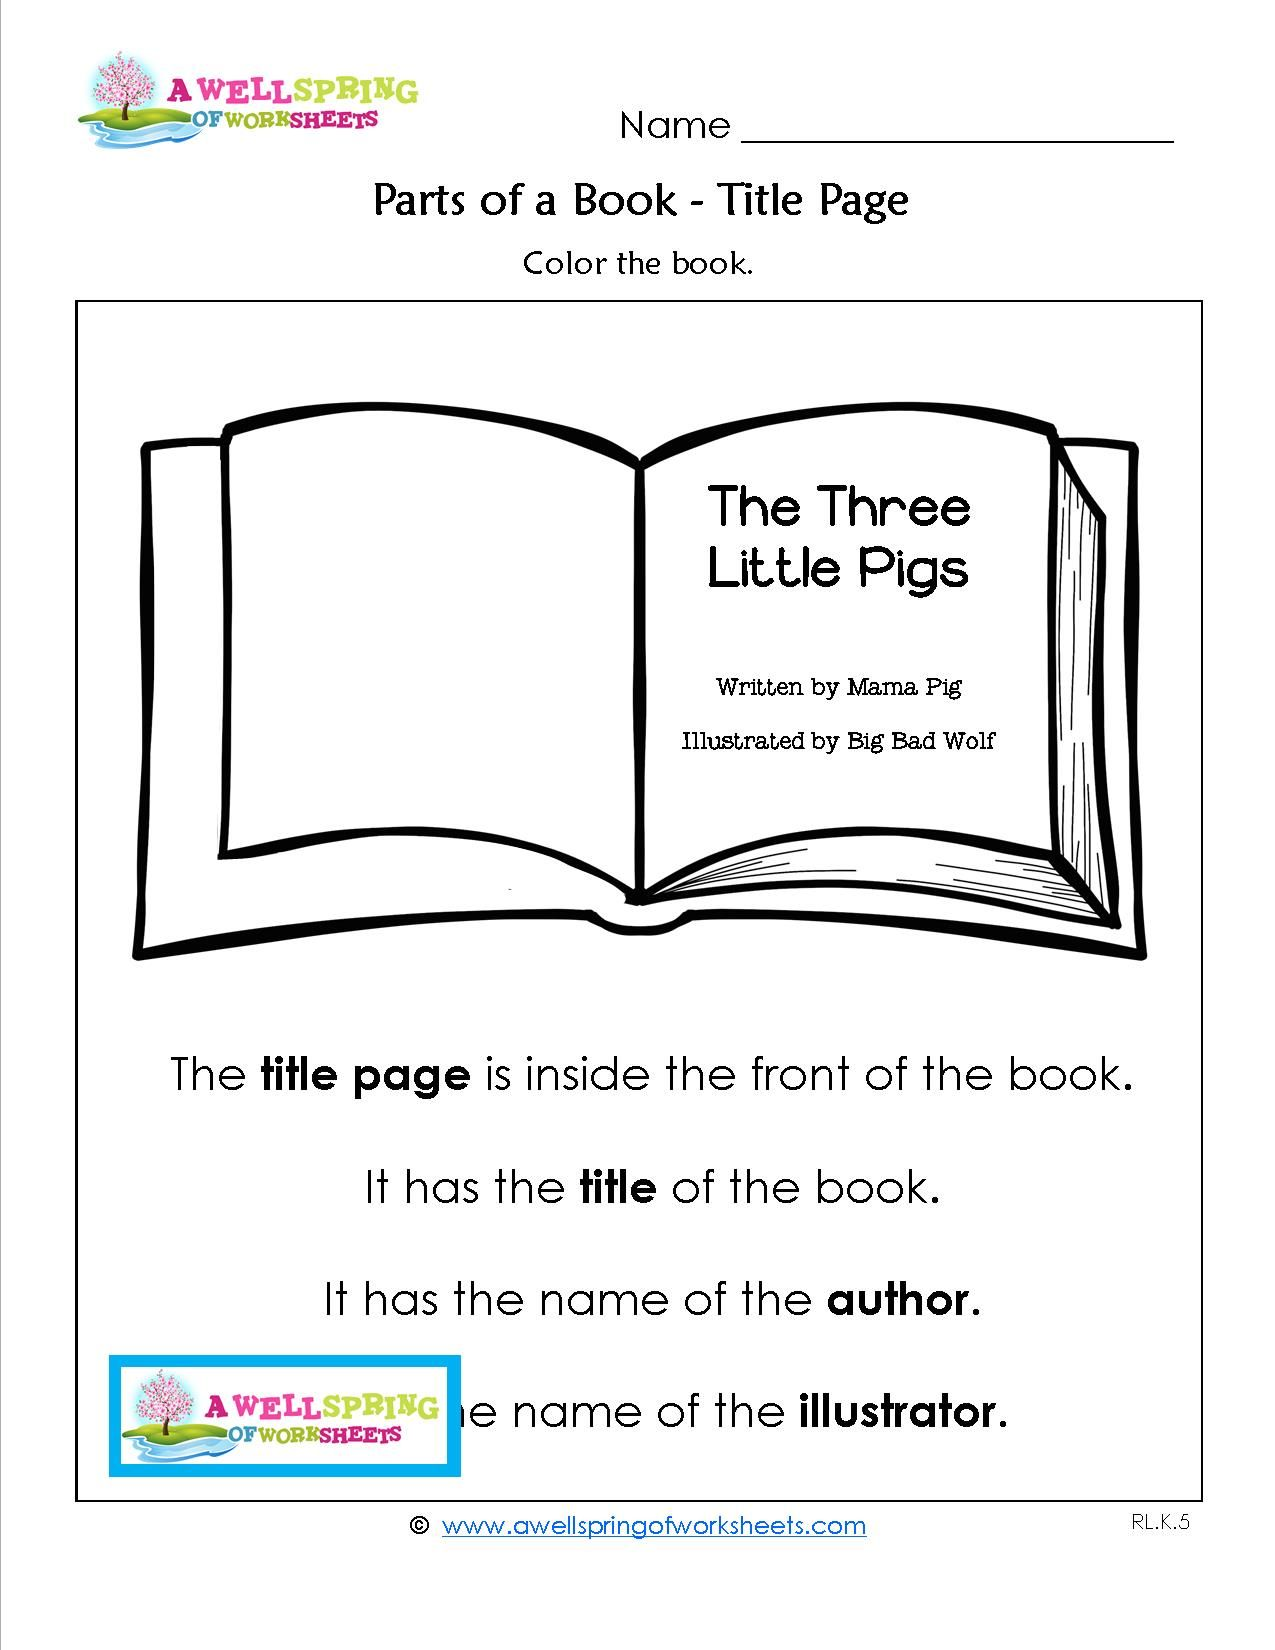 Parts Of A Book Worksheets And Vocabulary Cards Great Addition To Your Lessons About Concepts Of Pr Parts Of A Book Vocabulary Cards Kindergarten Worksheets [ 1650 x 1275 Pixel ]